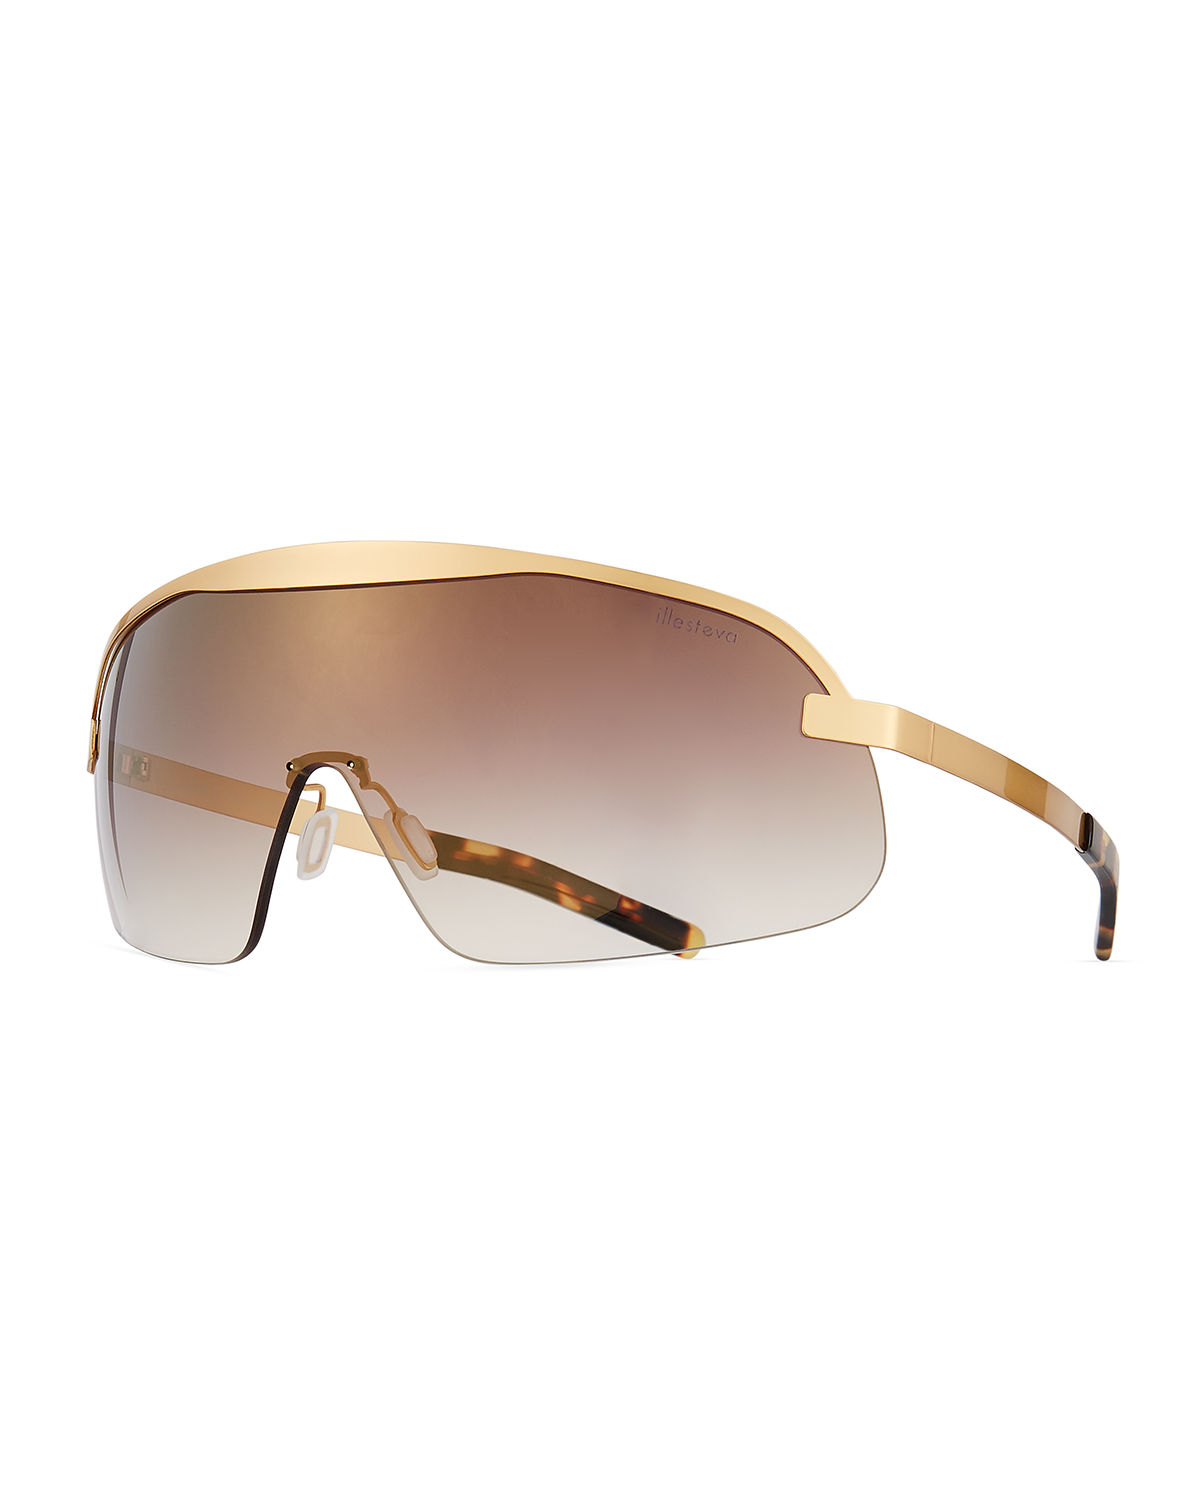 Illesteva Sunglasses HOPPER GRADIENT SHIELD SUNGLASSES